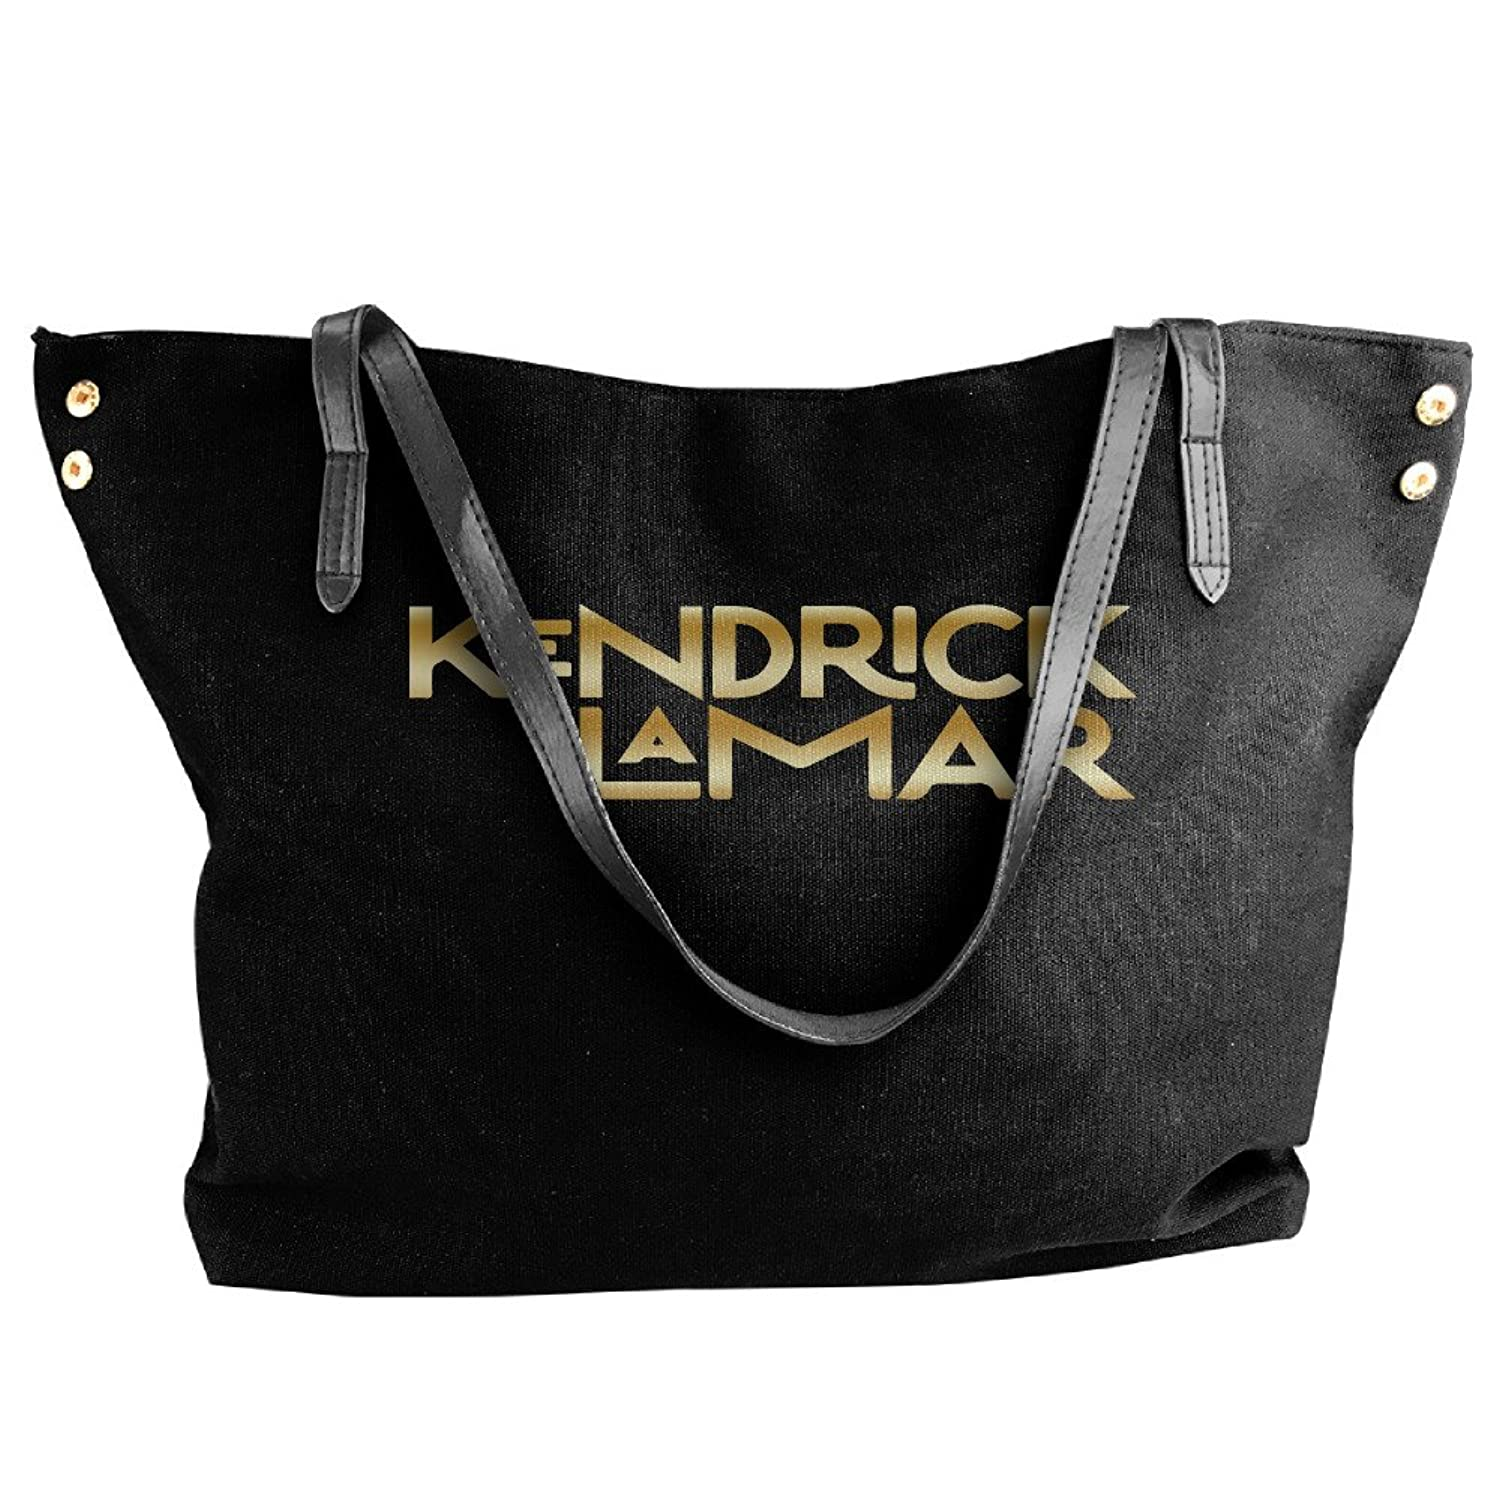 Kendrick Lamar Gold Logo Women Shoulder Bags